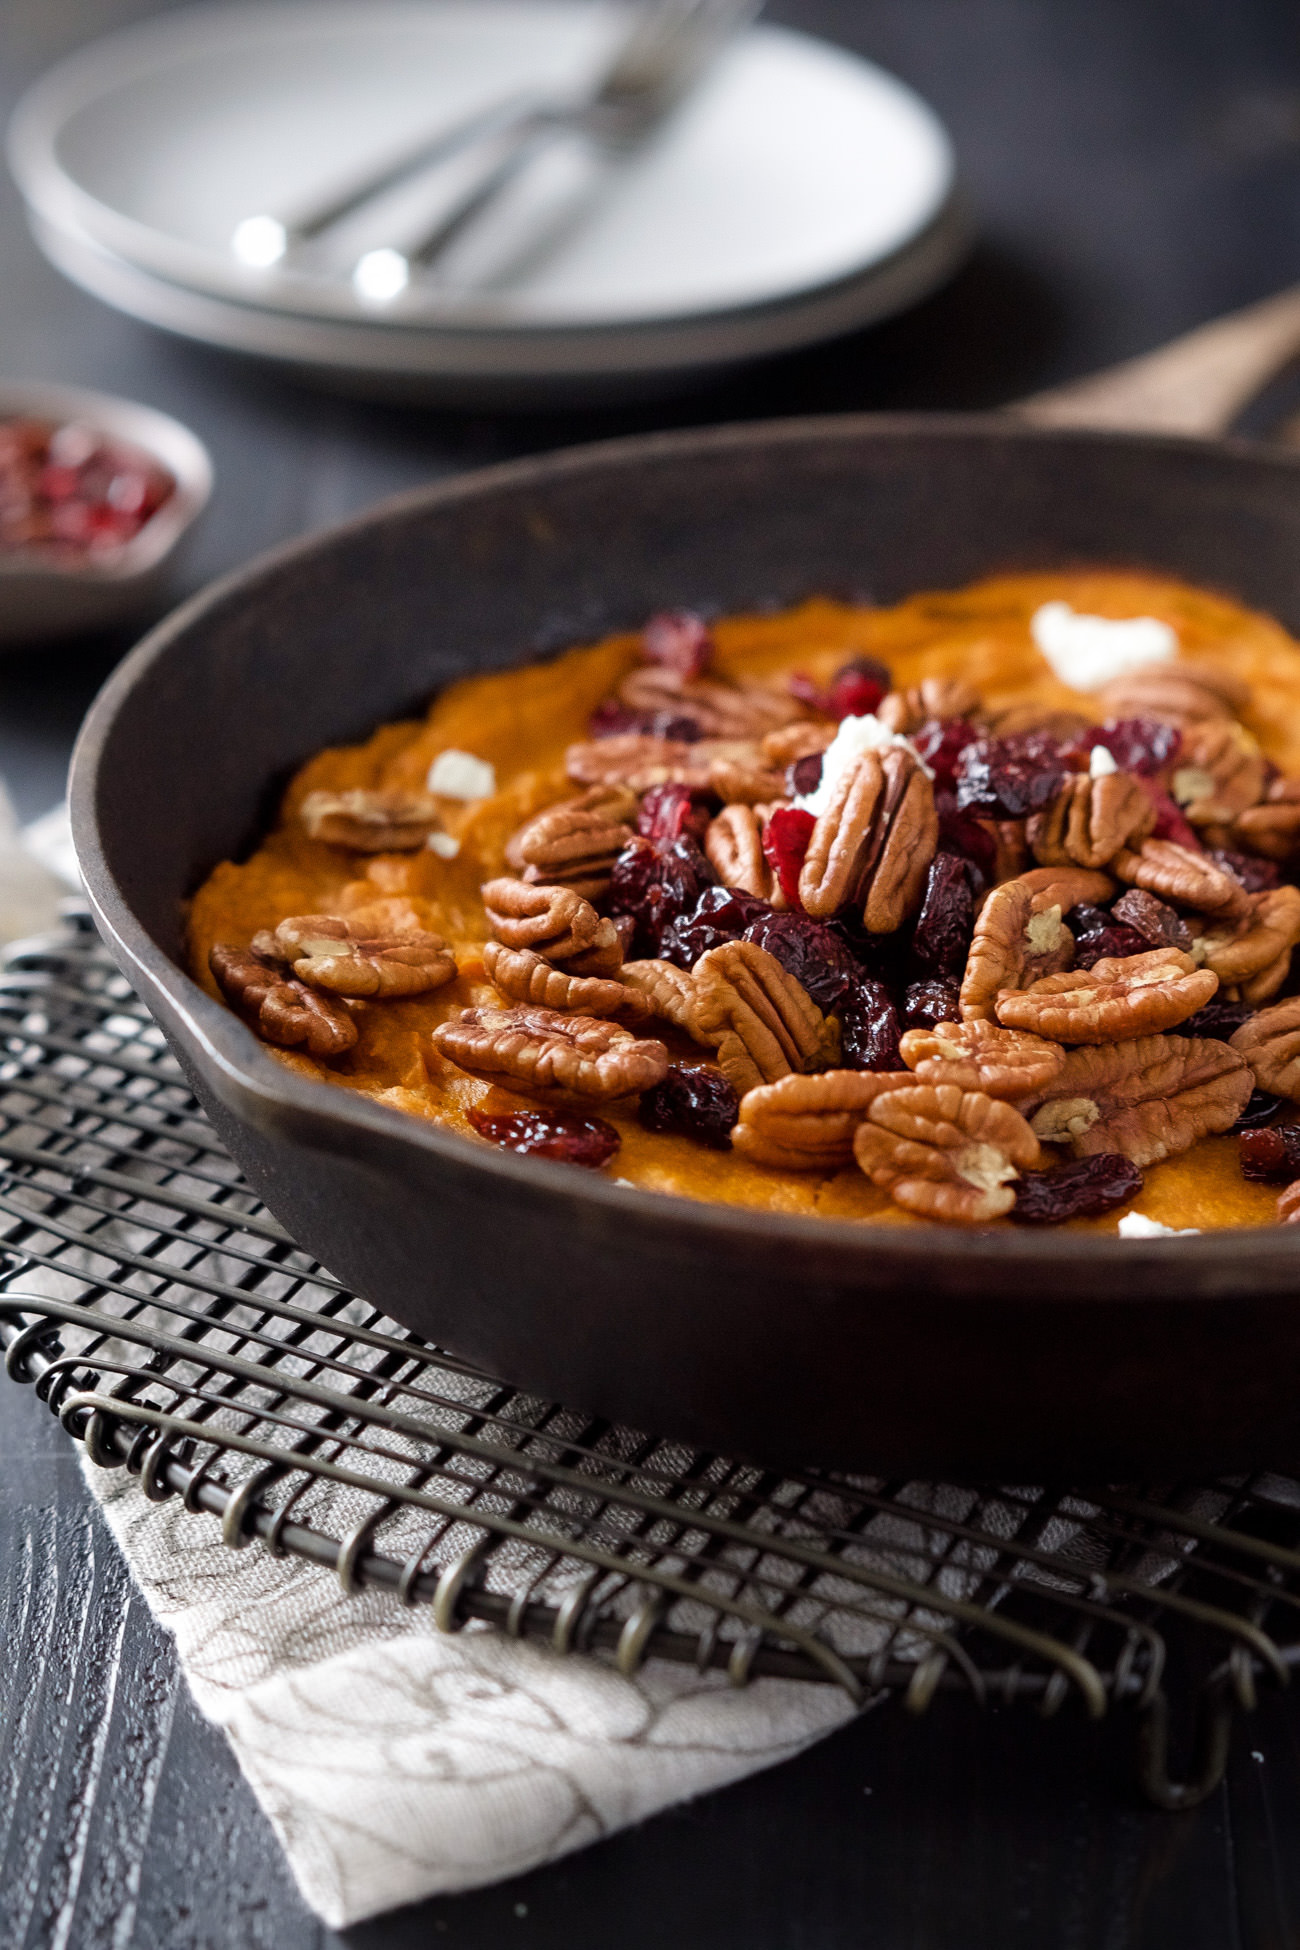 A super easy Vanilla Pecan Sweet Potato Casserole that is filled with whipped sweet potatoes until they're velvety and topped with cranberries and goat cheese!